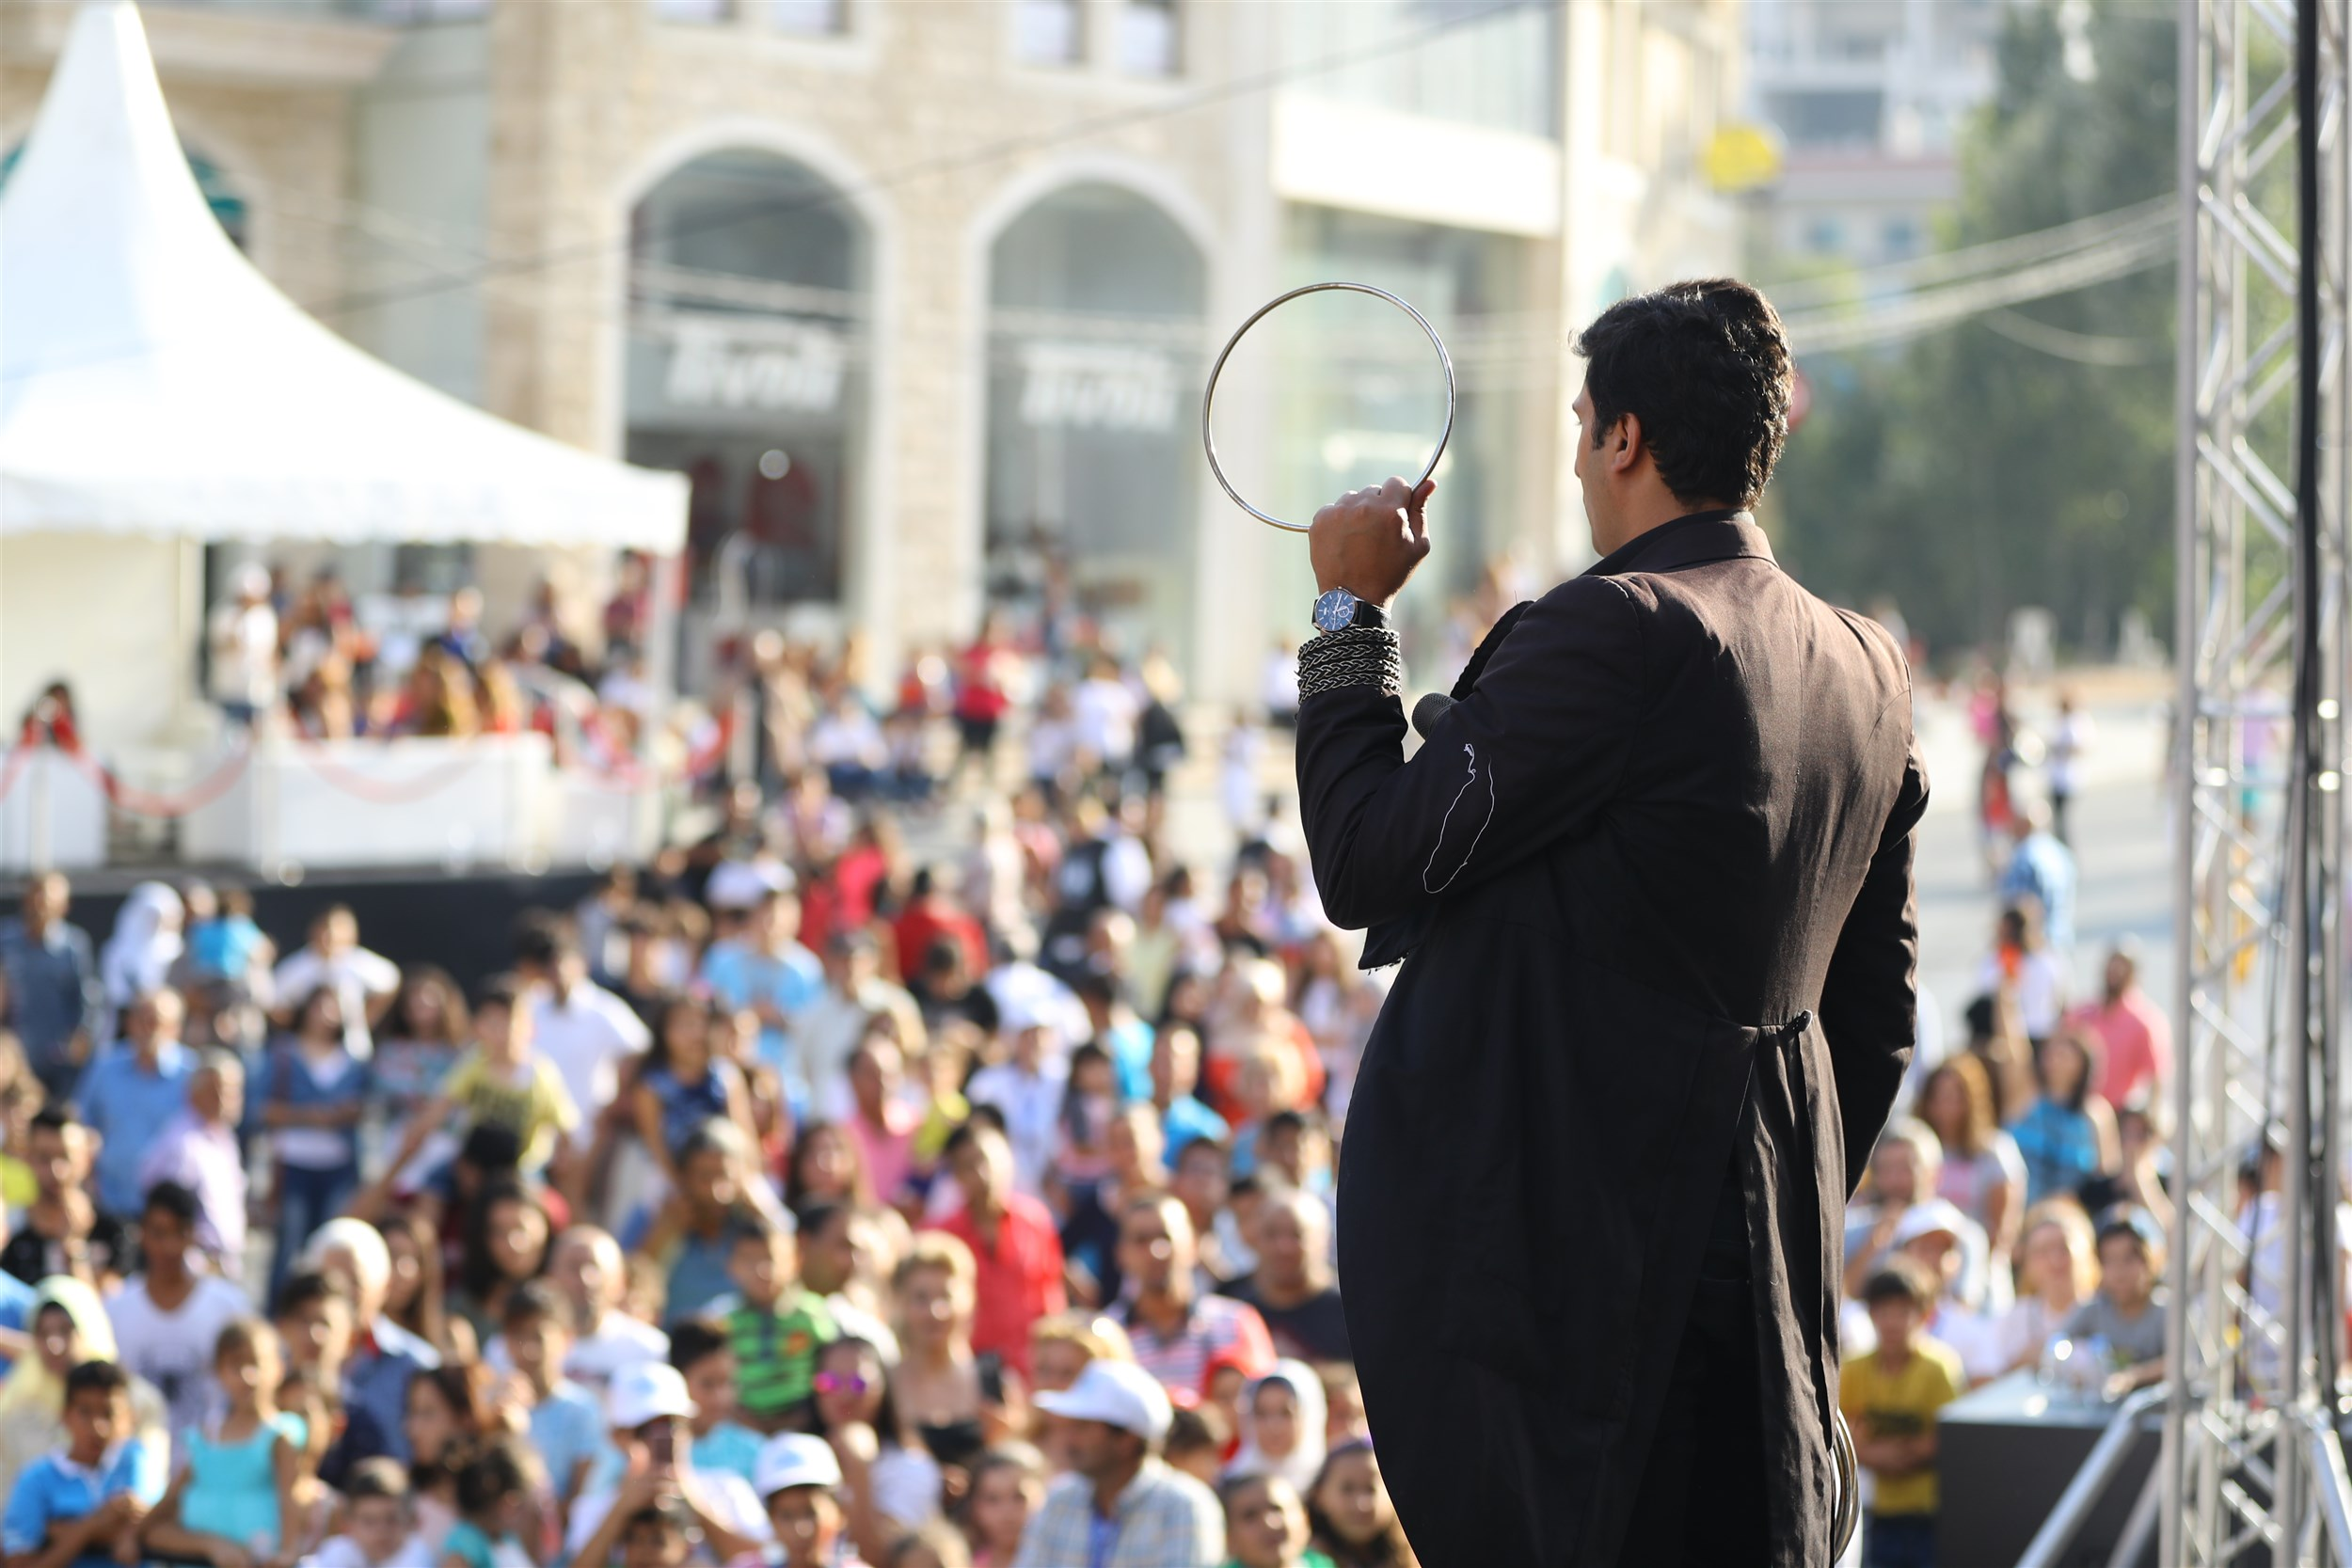 more and more magic for the crowds